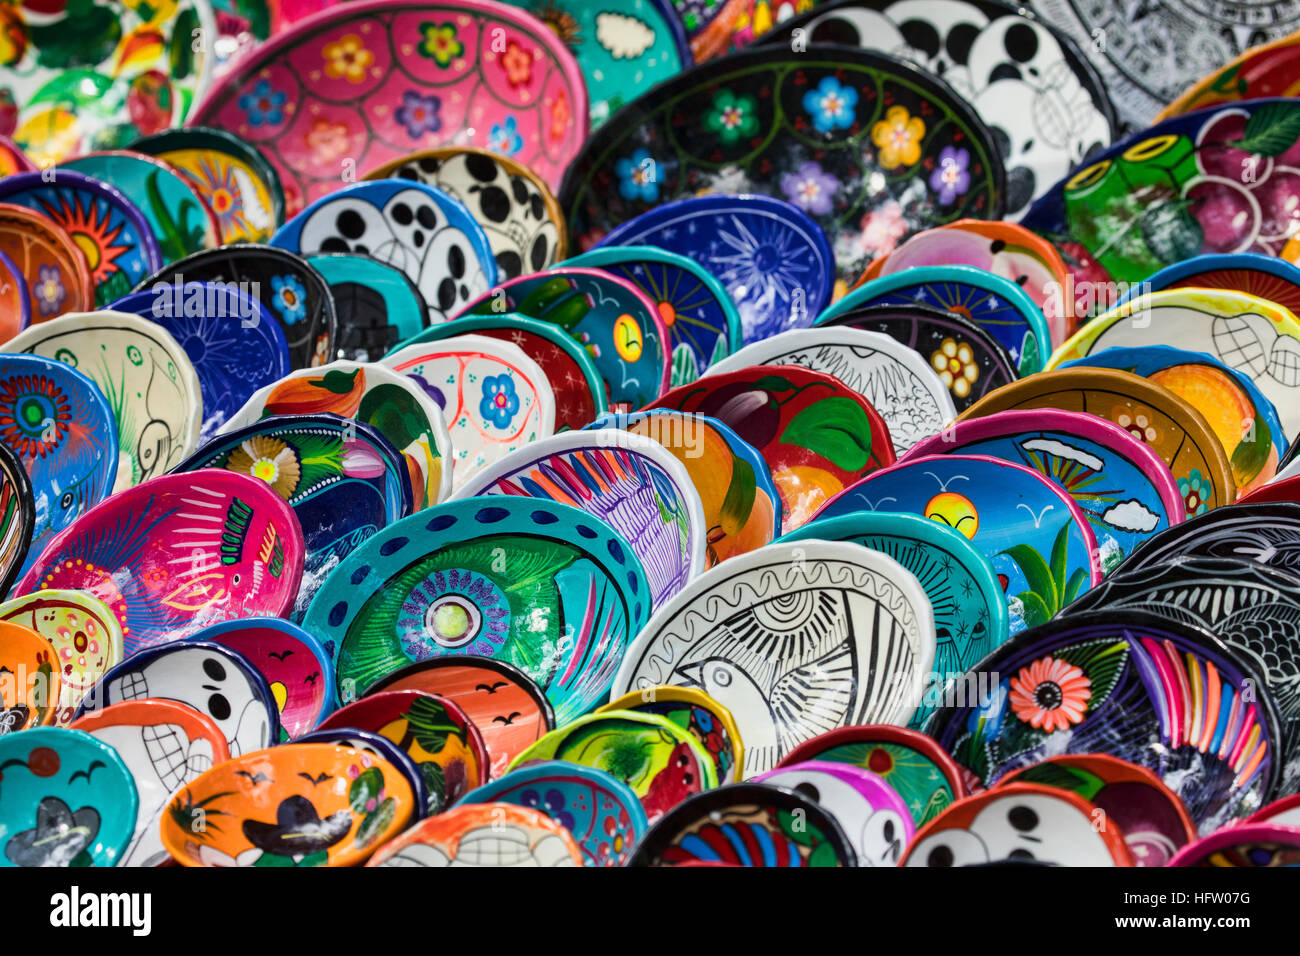 Keramische Platten Schneiden Plates Colorful Art Mexico Stockfotos And Plates Colorful